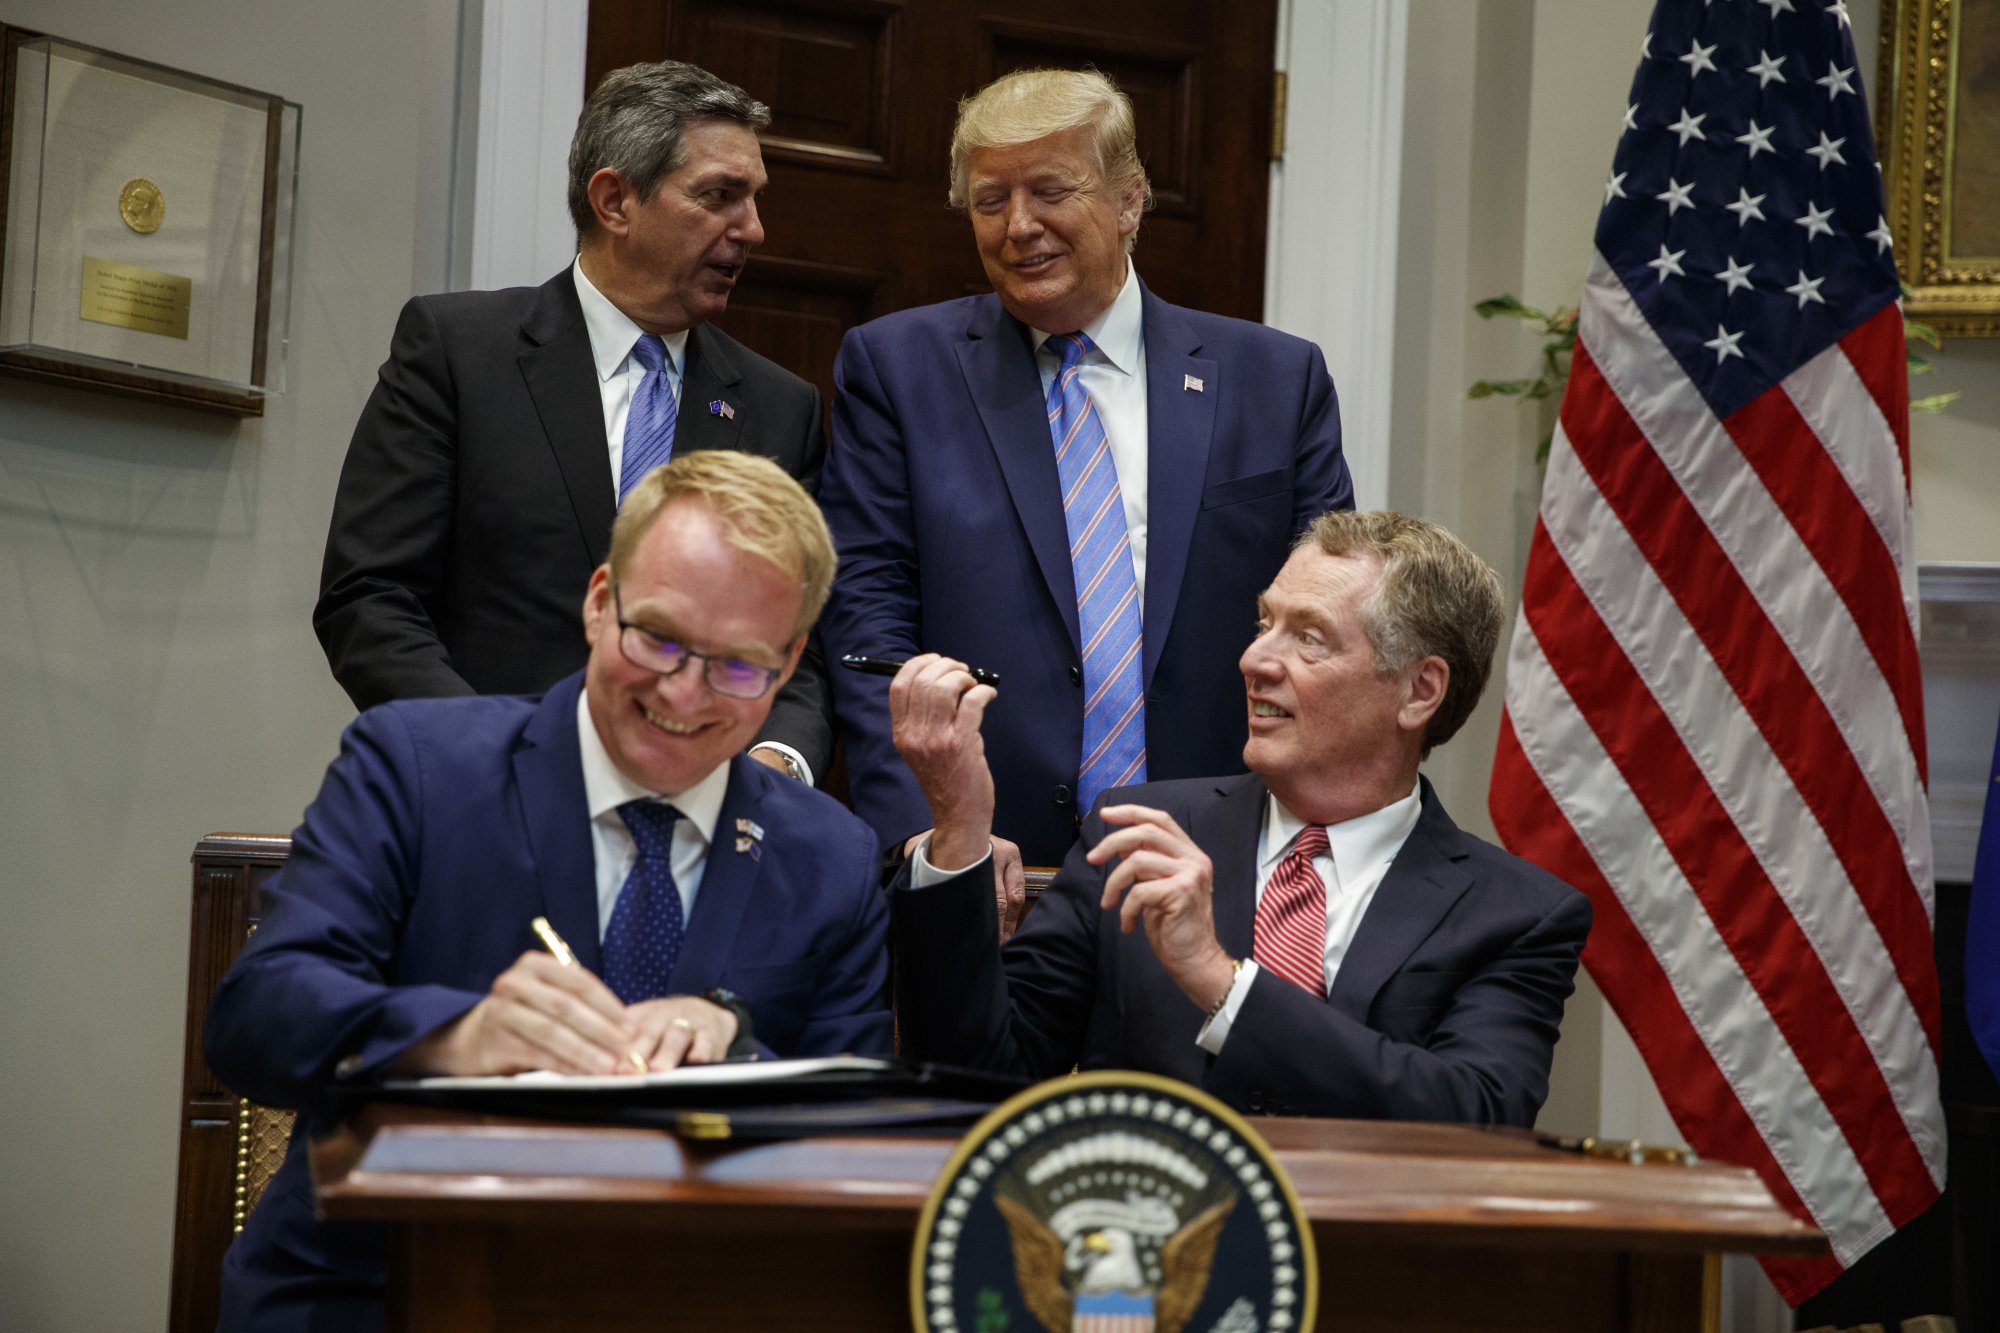 U.S. President Donald Trump talks with European Union Ambassador Stavros Lambrinidis as U.S. Trade Representative Robert Lighthizer (front right) and Jani Raappana, deputy head of mission for the Finnish presidency of the Council of the EU, sign an agreement expanding U.S. beef exports to the European Union, in the Roosevelt Room of the White House on Friday.   AP